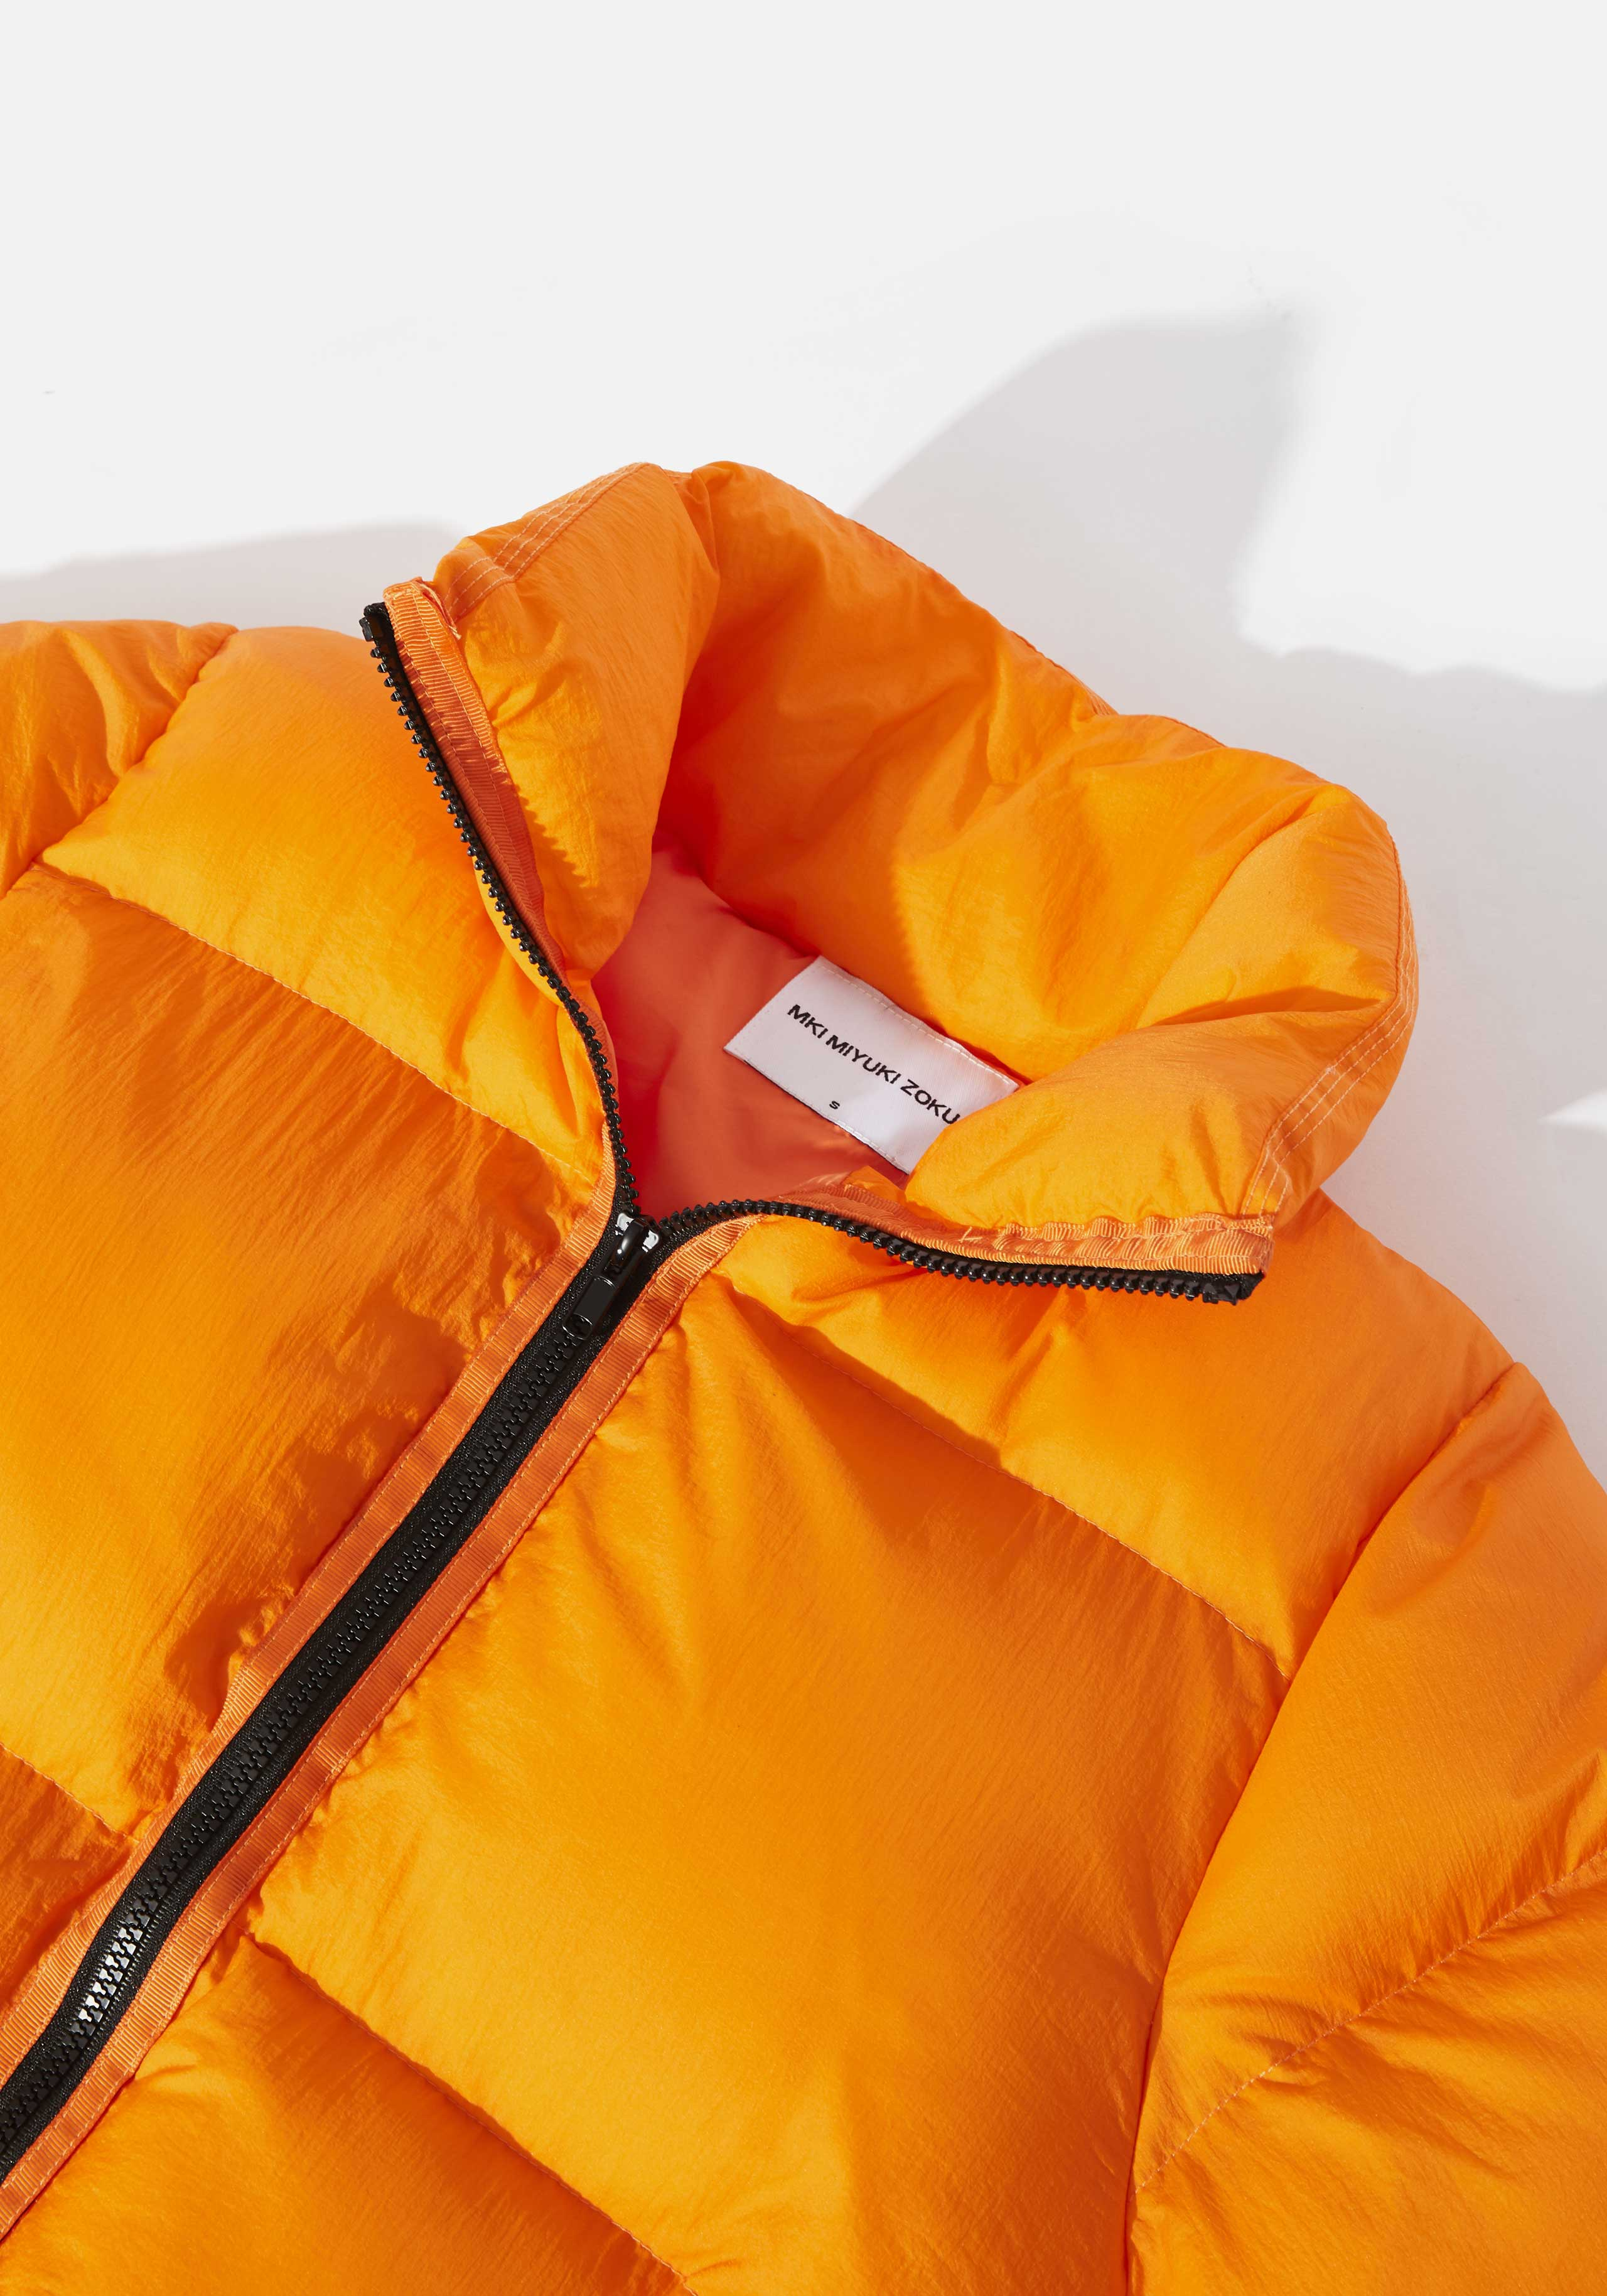 mki bubble jacket 3